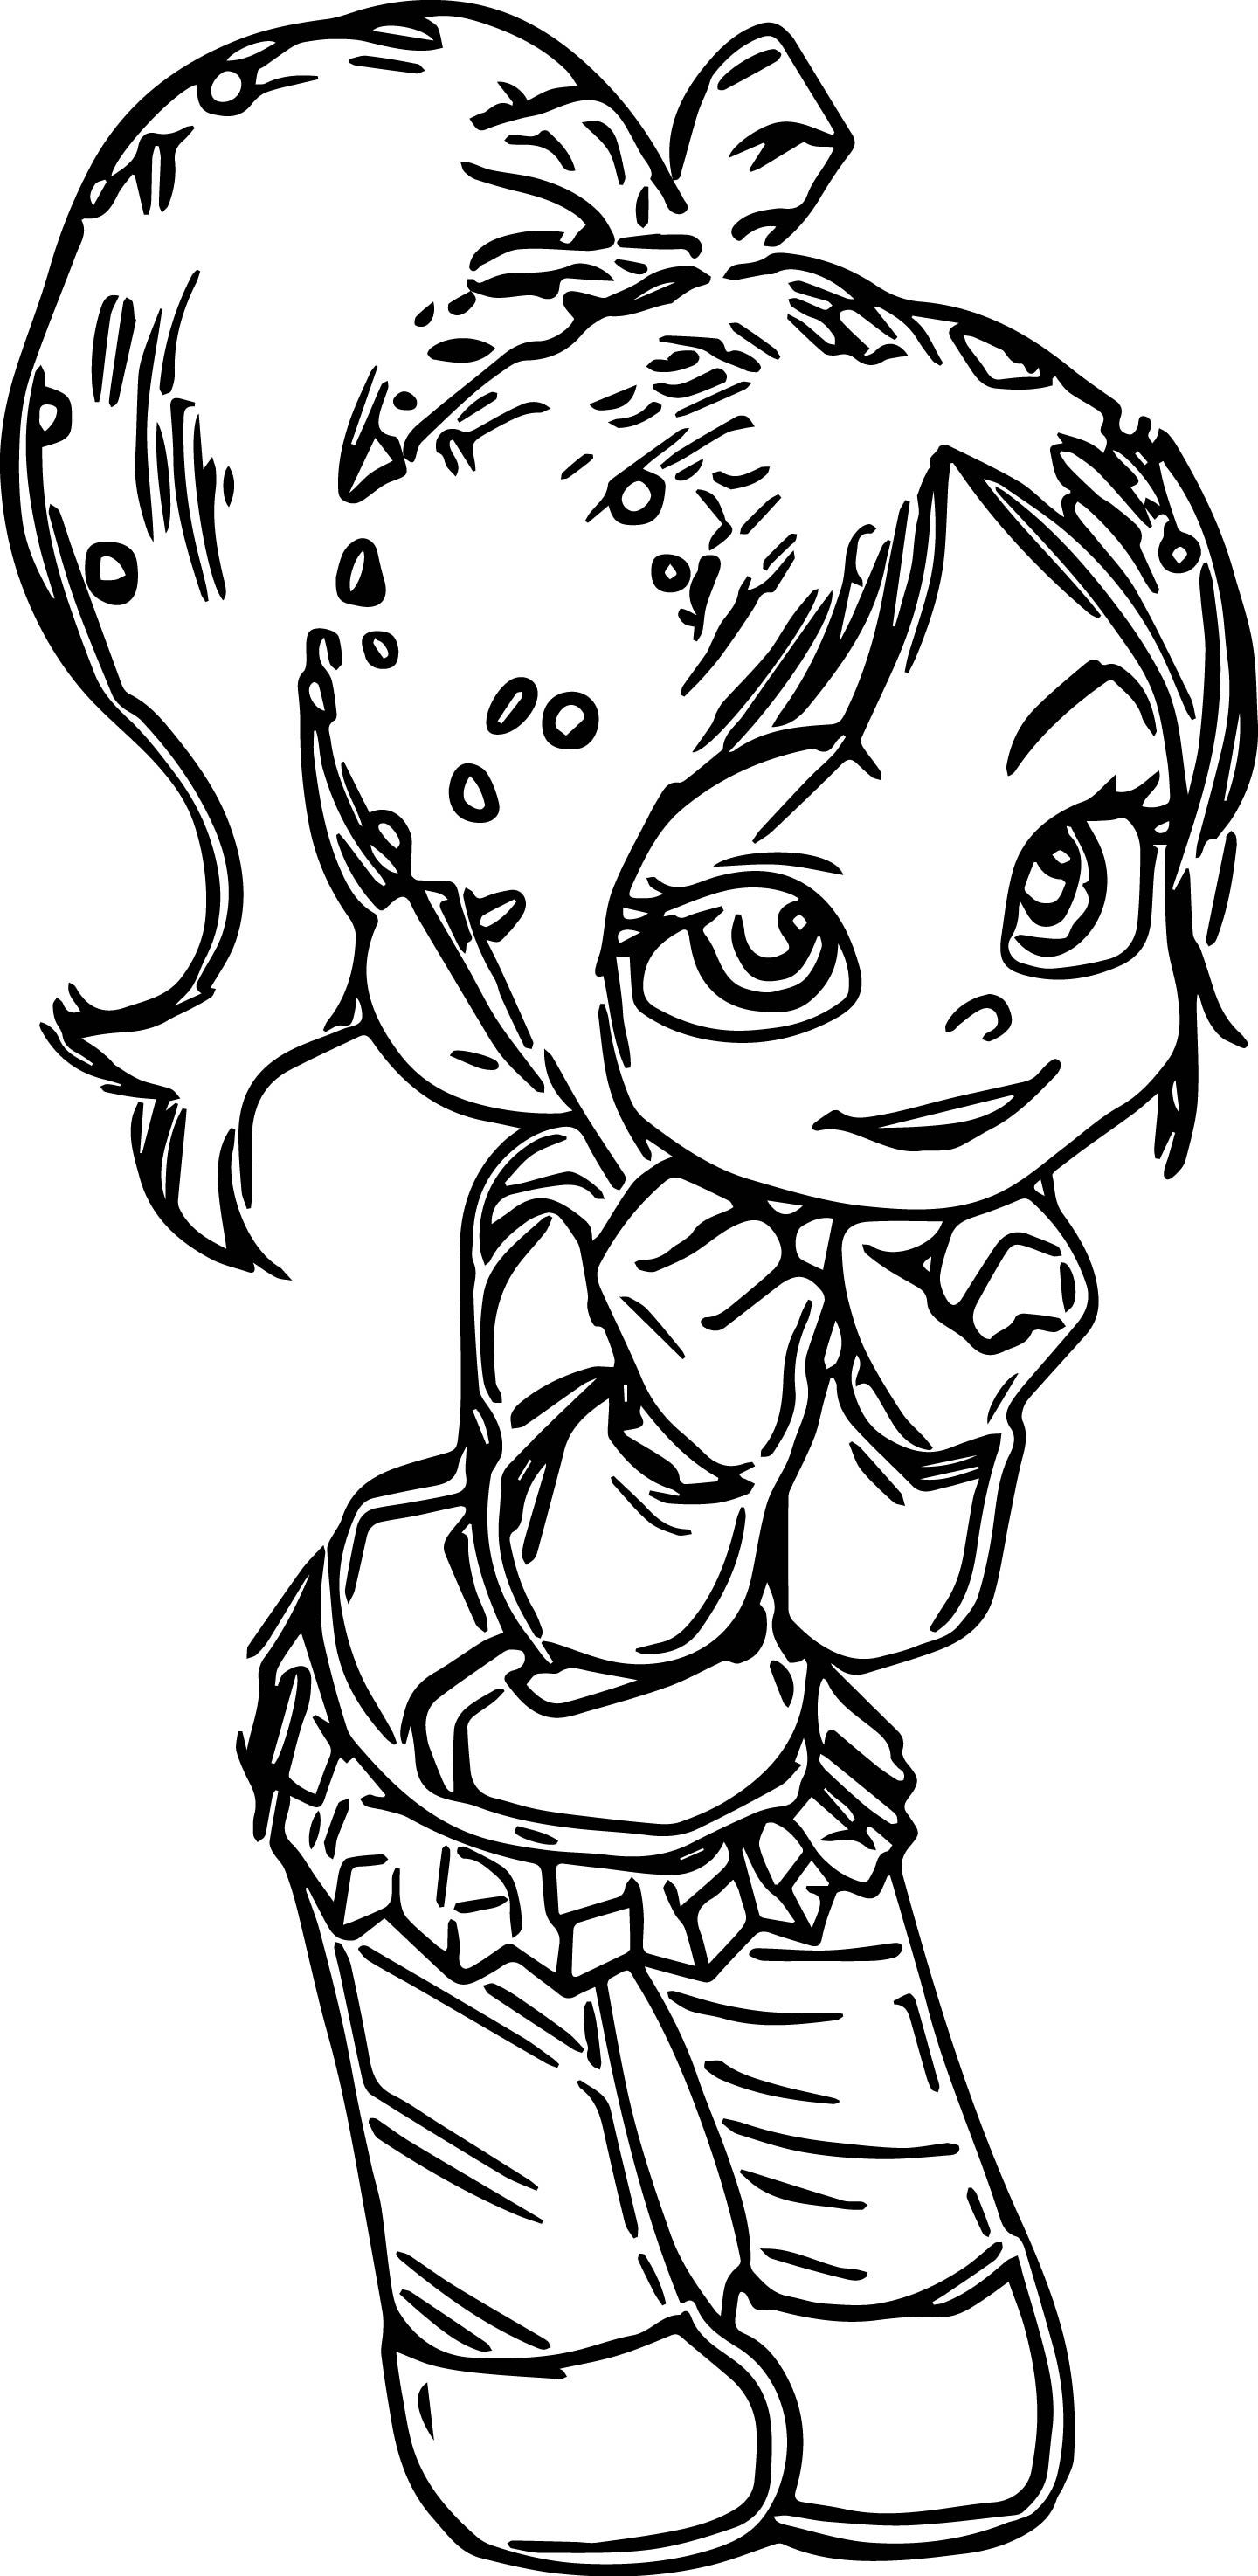 Vanellope Von Schweetz Girl Coloring Page Princess Coloring Pages Coloring Pages For Girls Monster Coloring Pages